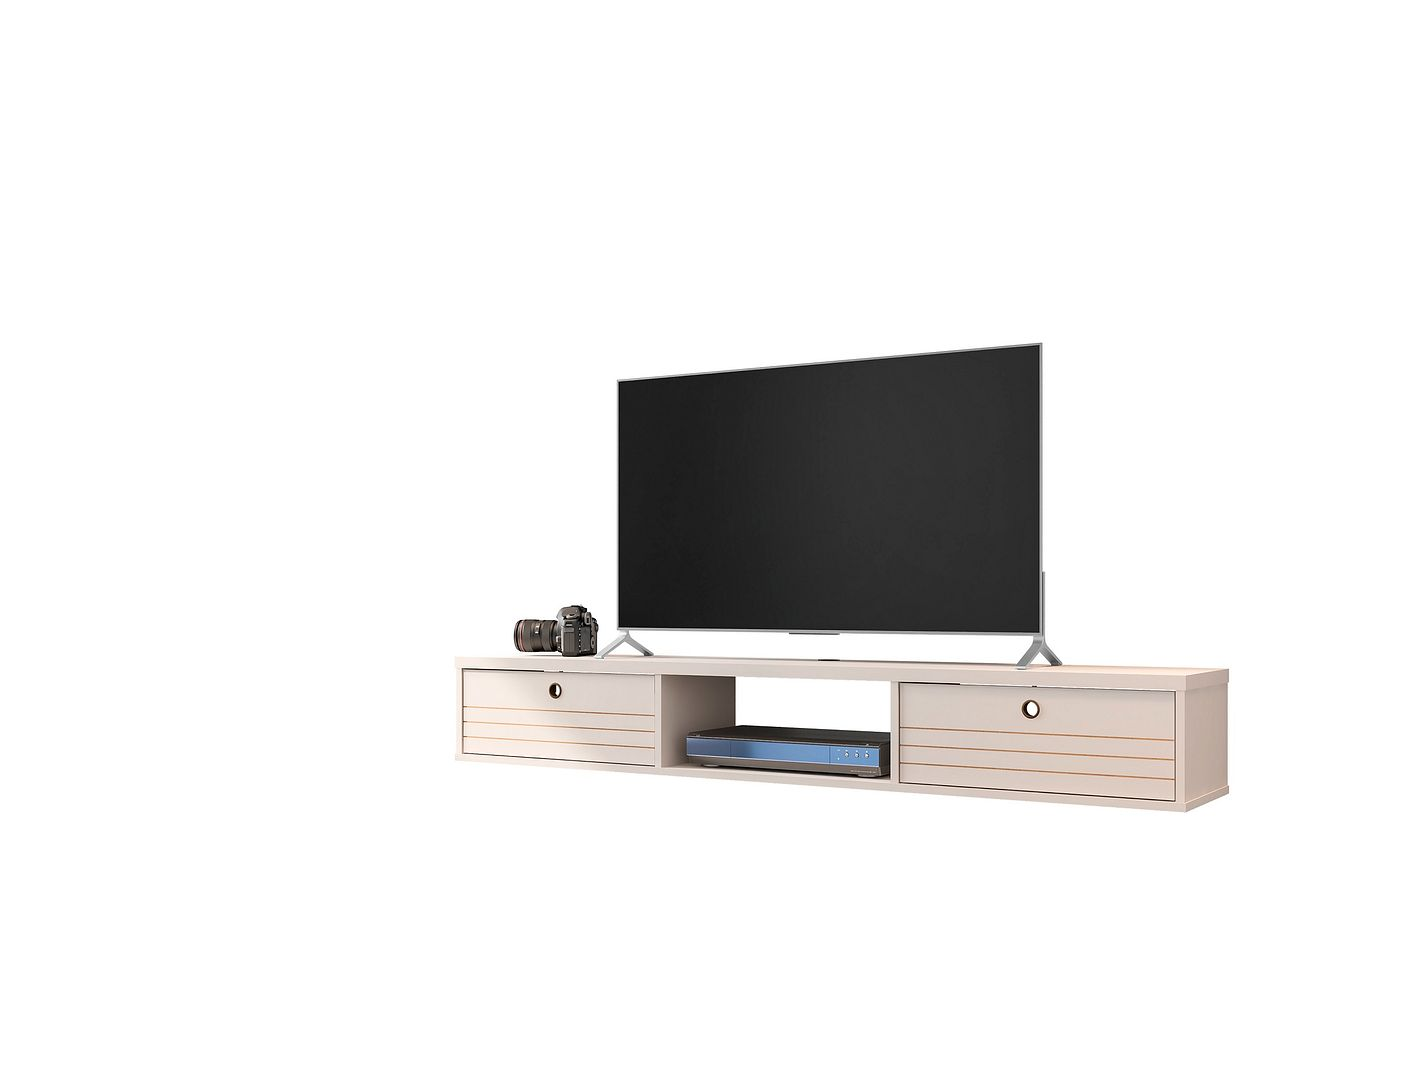 liberty 62 99 mid century modern floating entertainment center with 3 shelves in off white